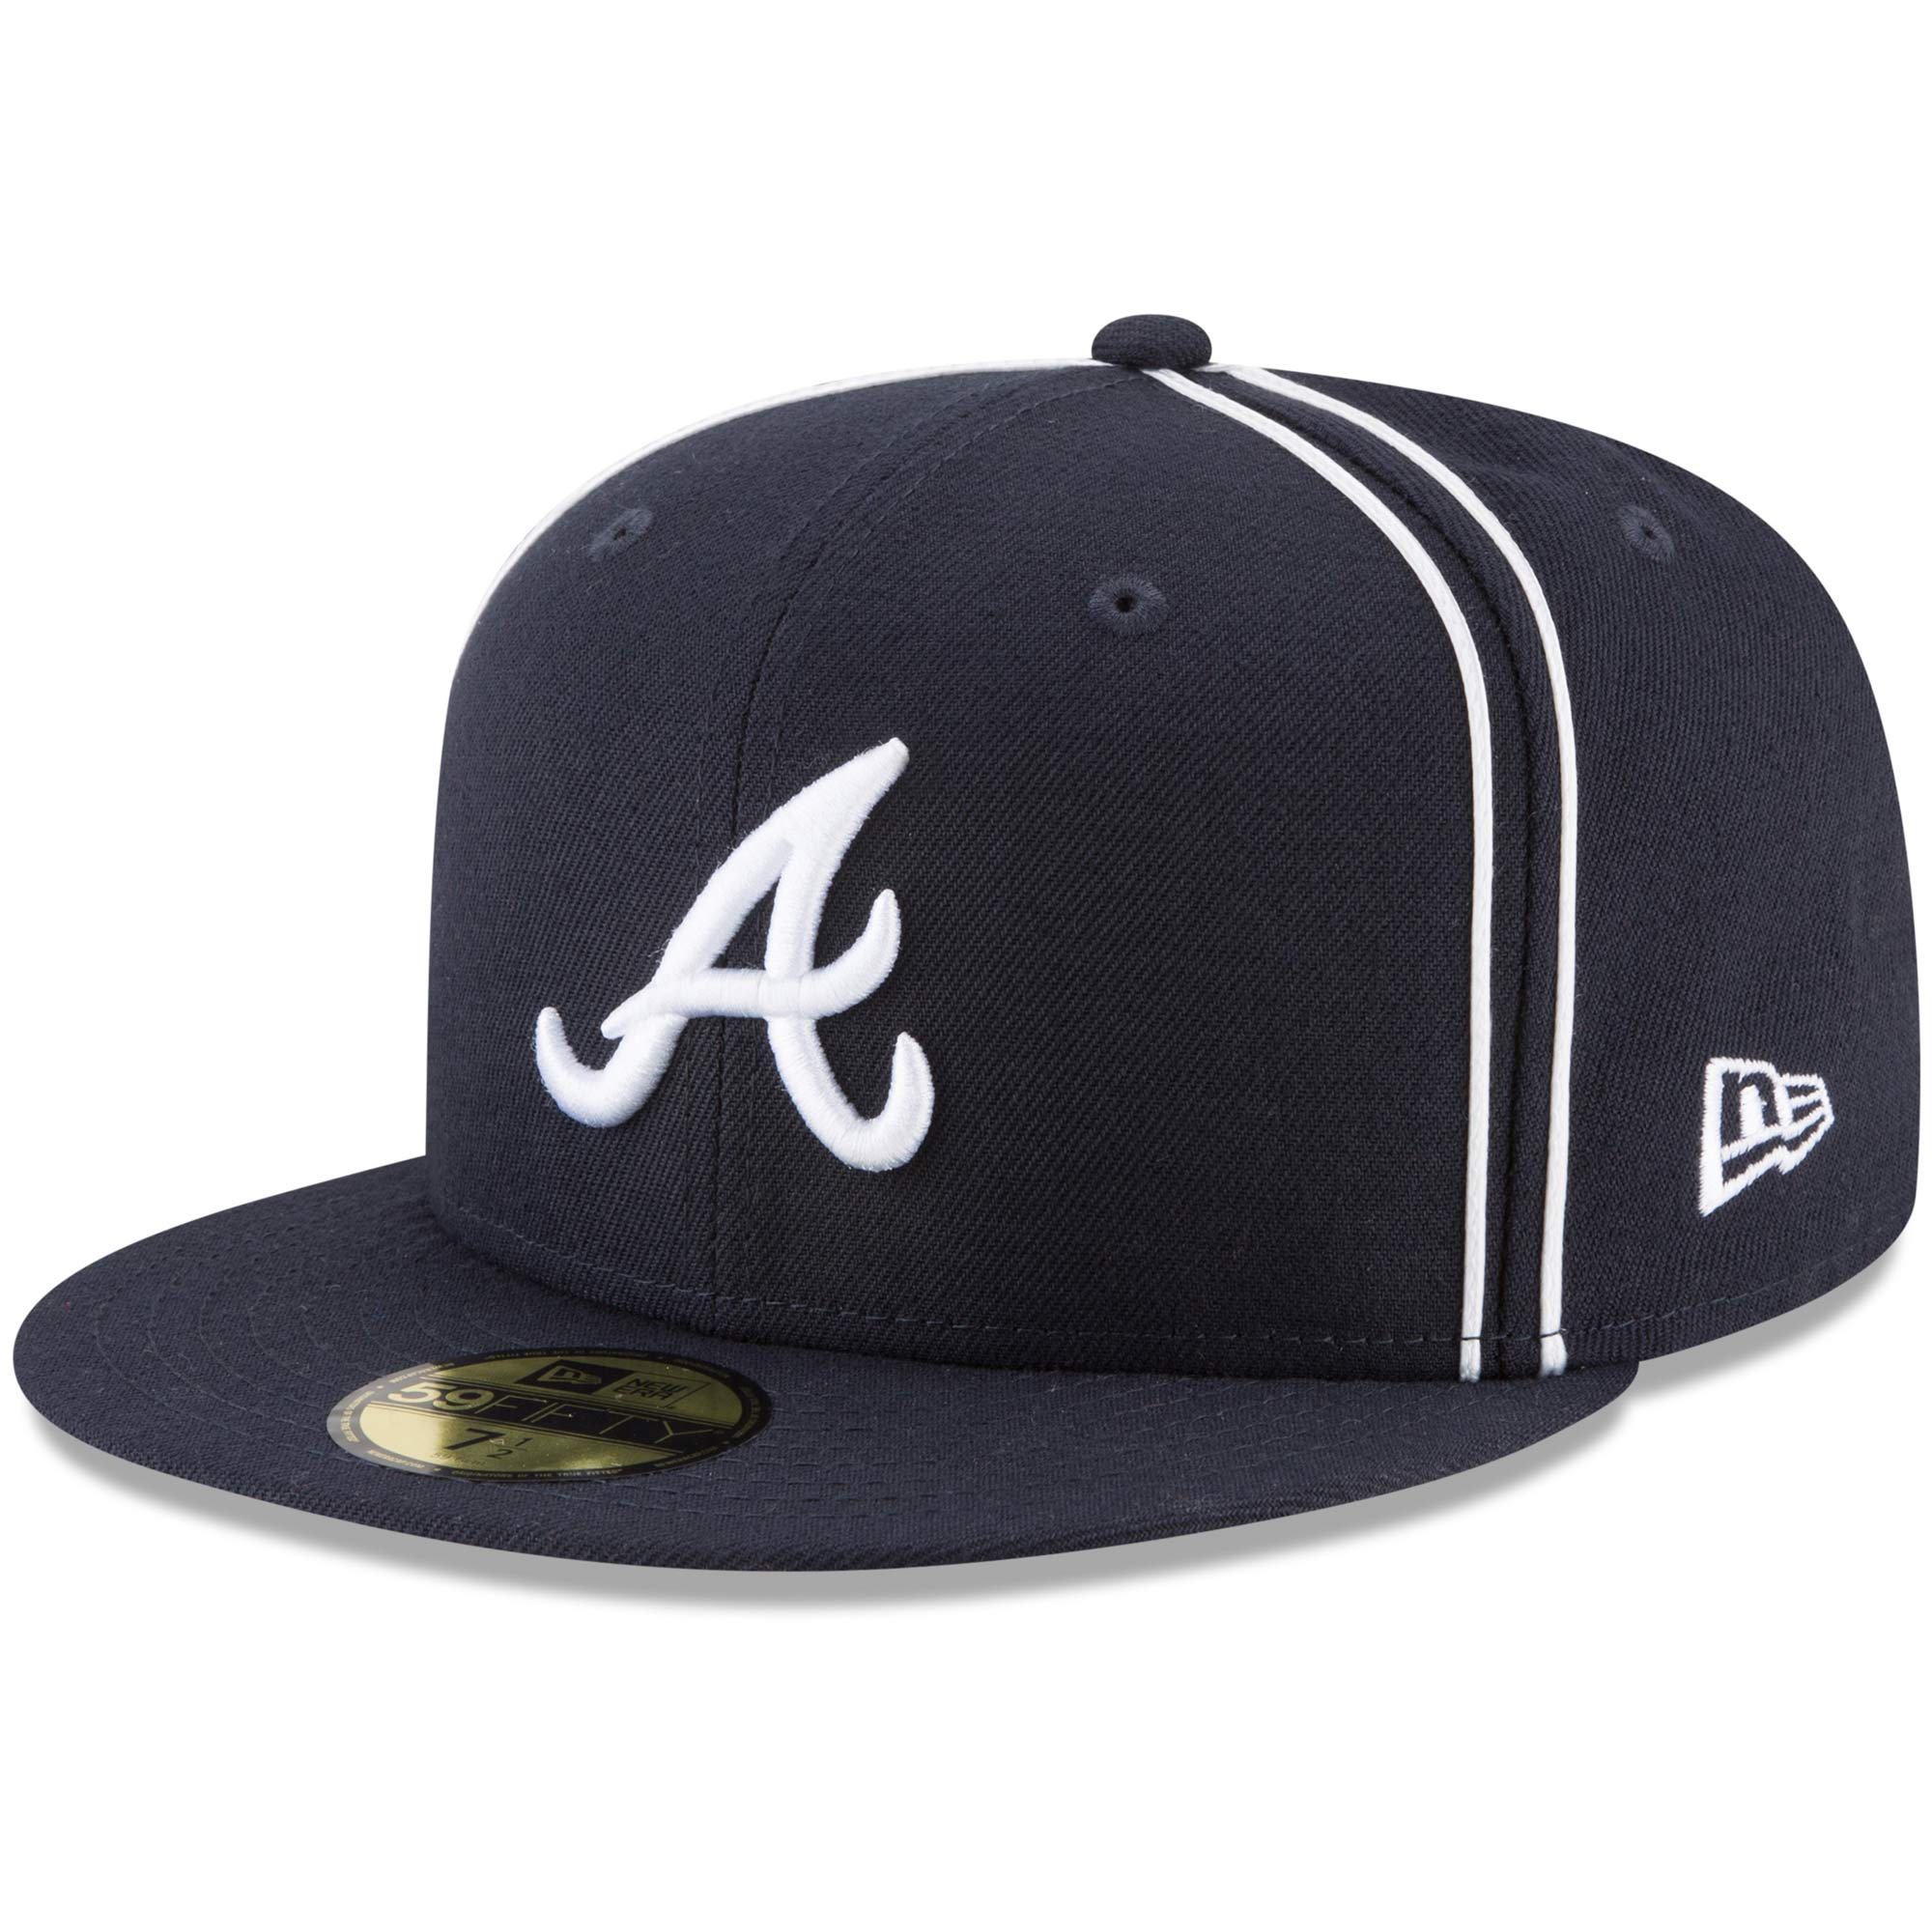 Atlanta Braves New Era Y2K Soutache 59FIFTY Fitted Hat - Navy